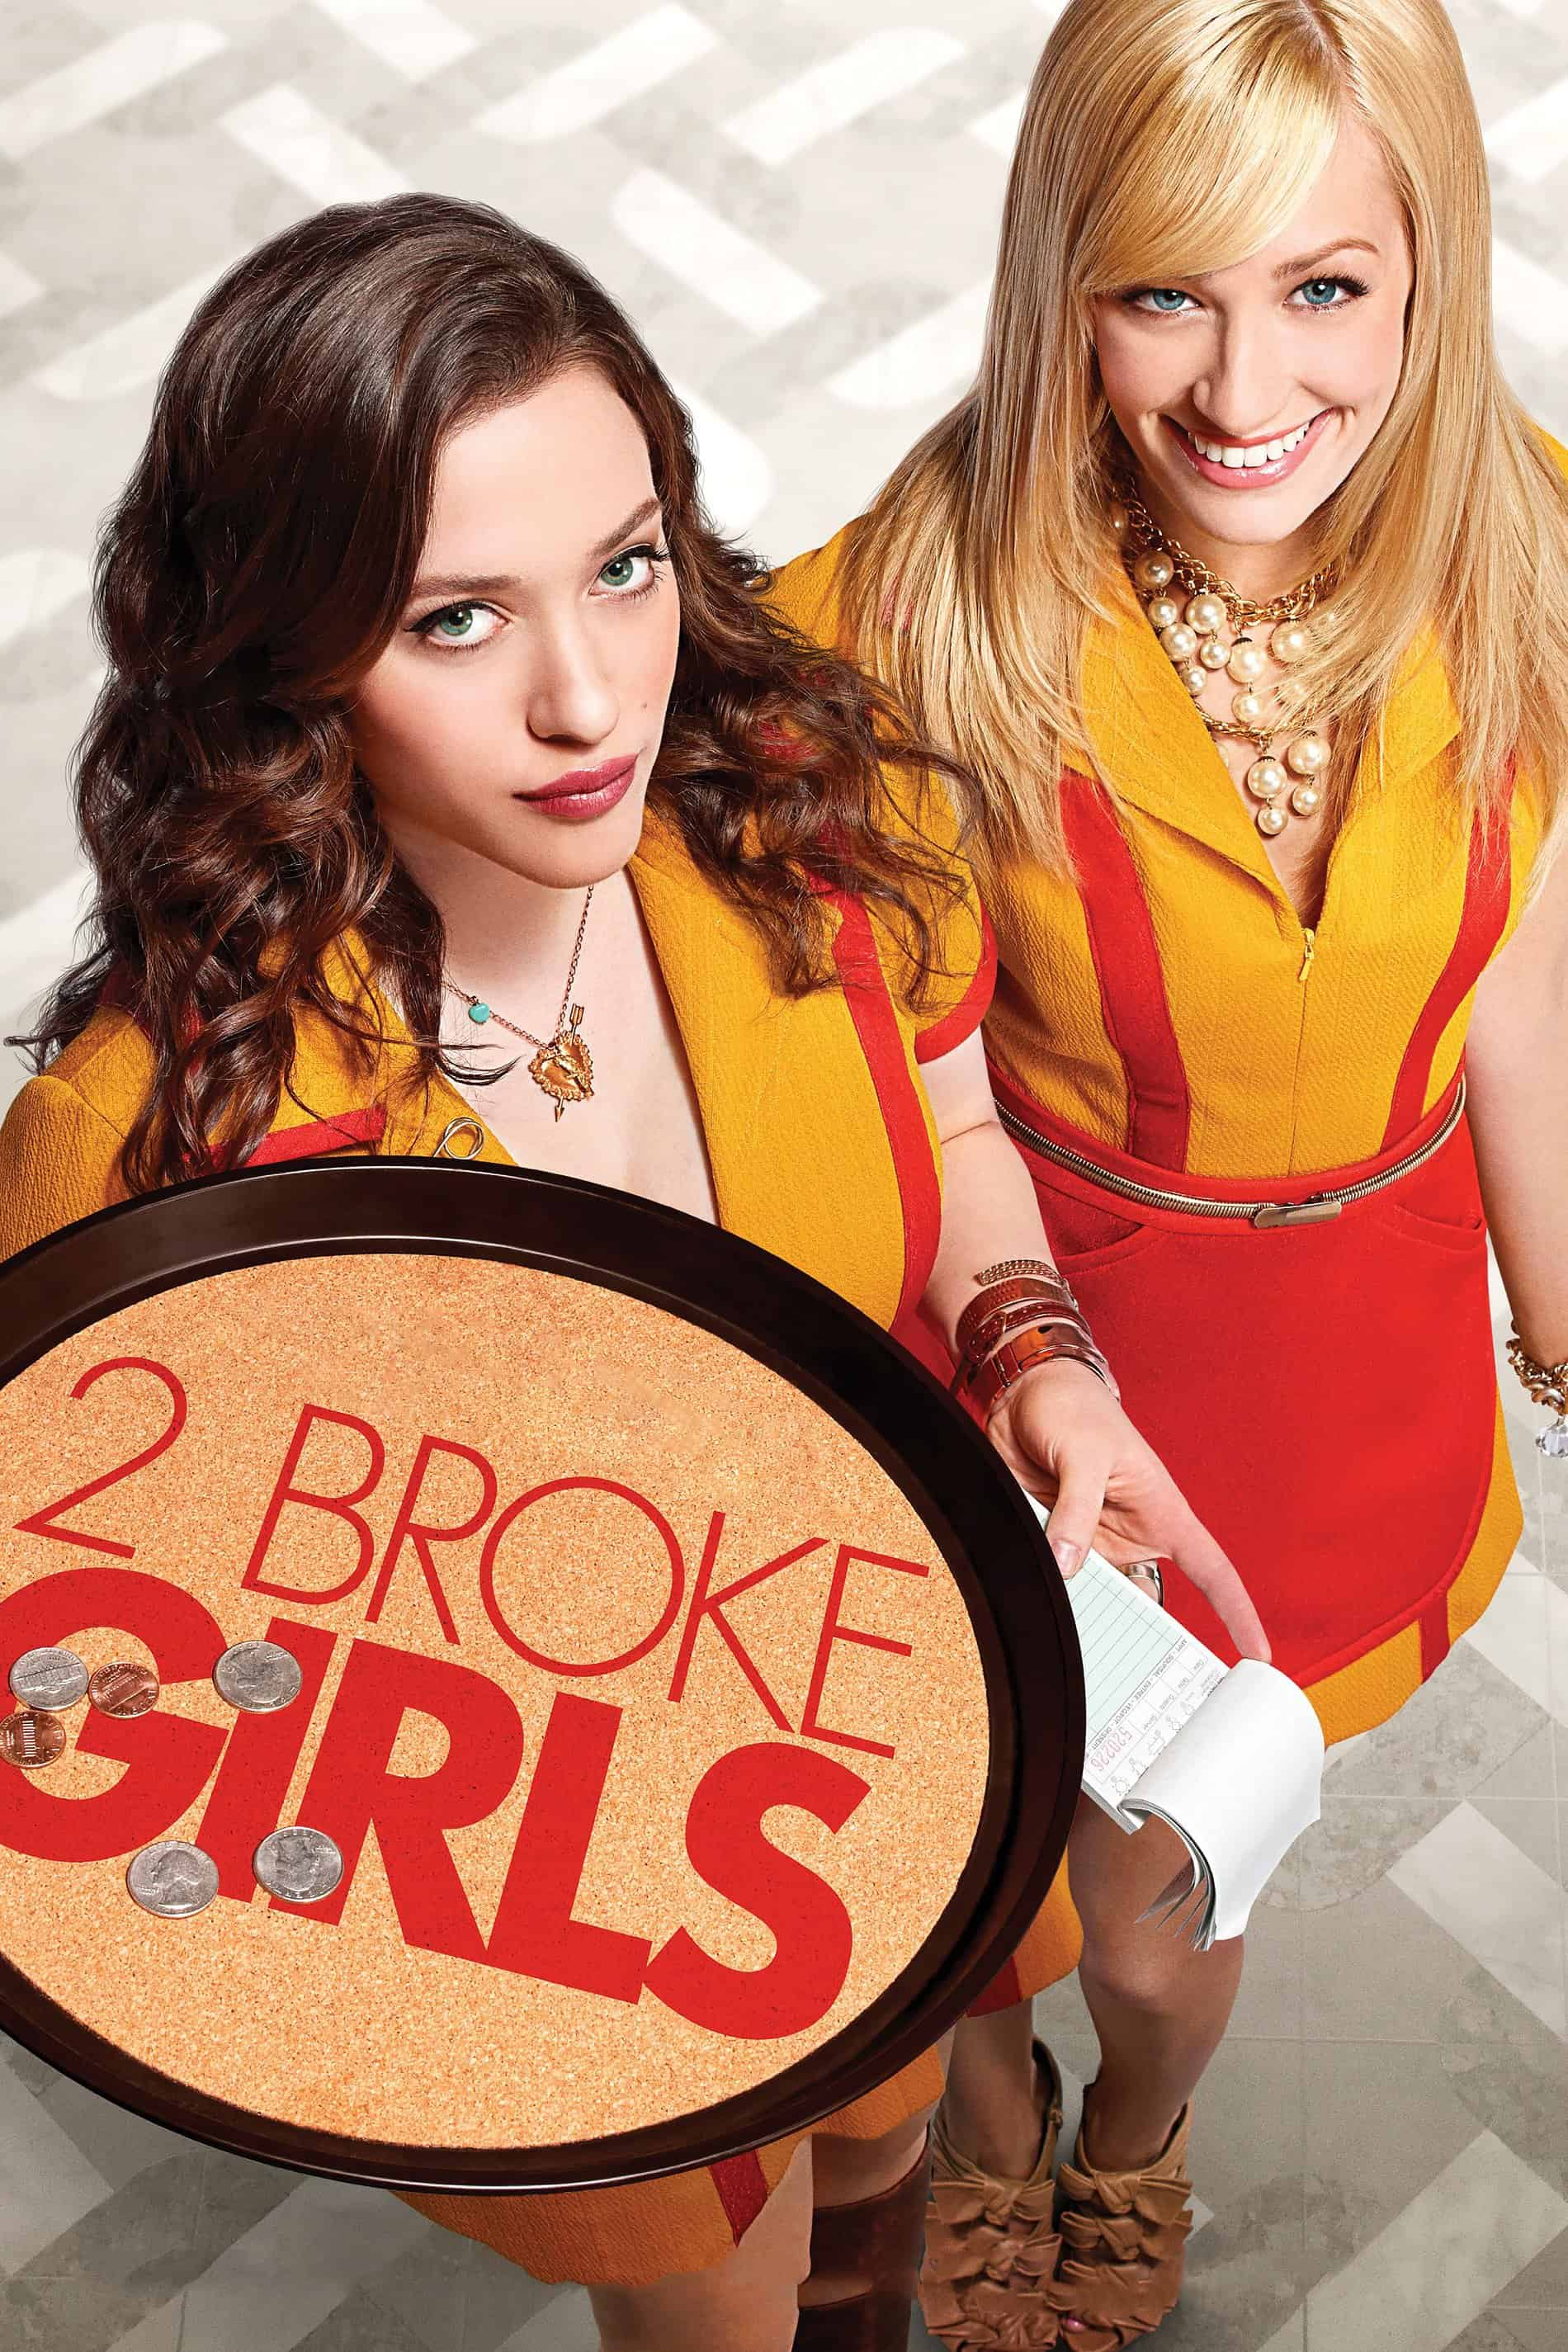 2 Broke Girls, 2011